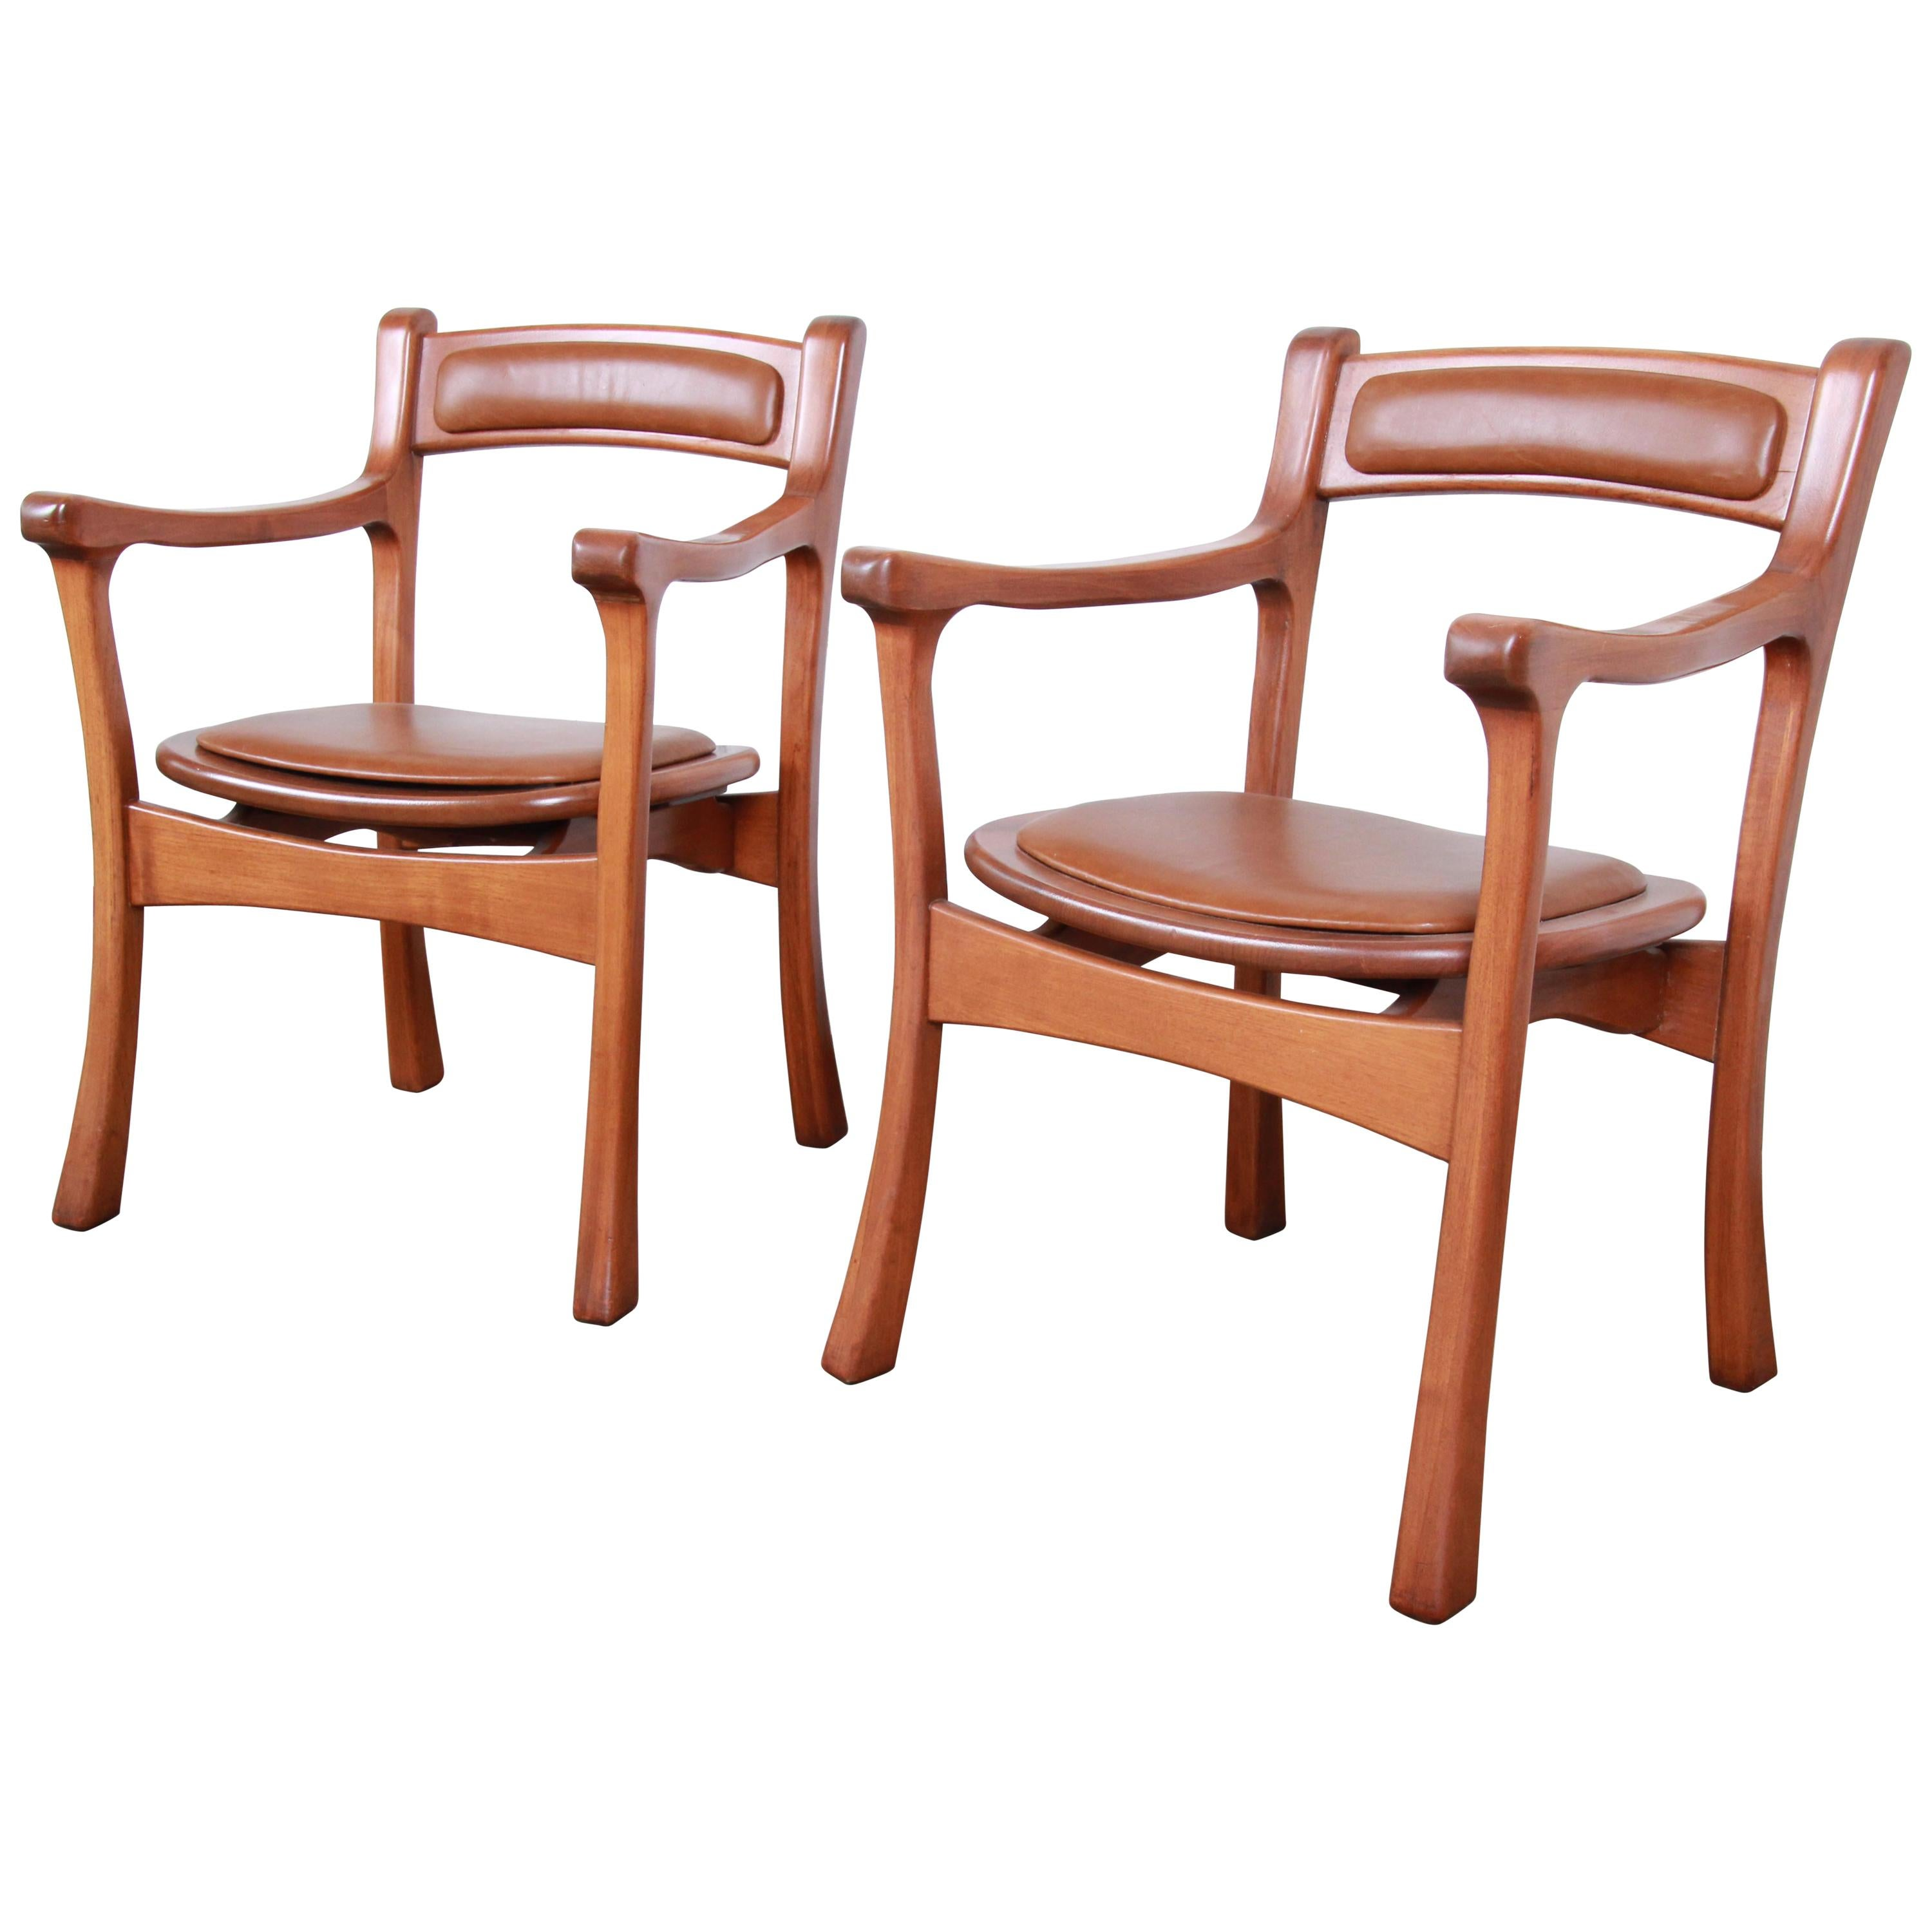 Sculpted Solid Teak and Leather Studio Crafted Club Chairs, circa 1960s